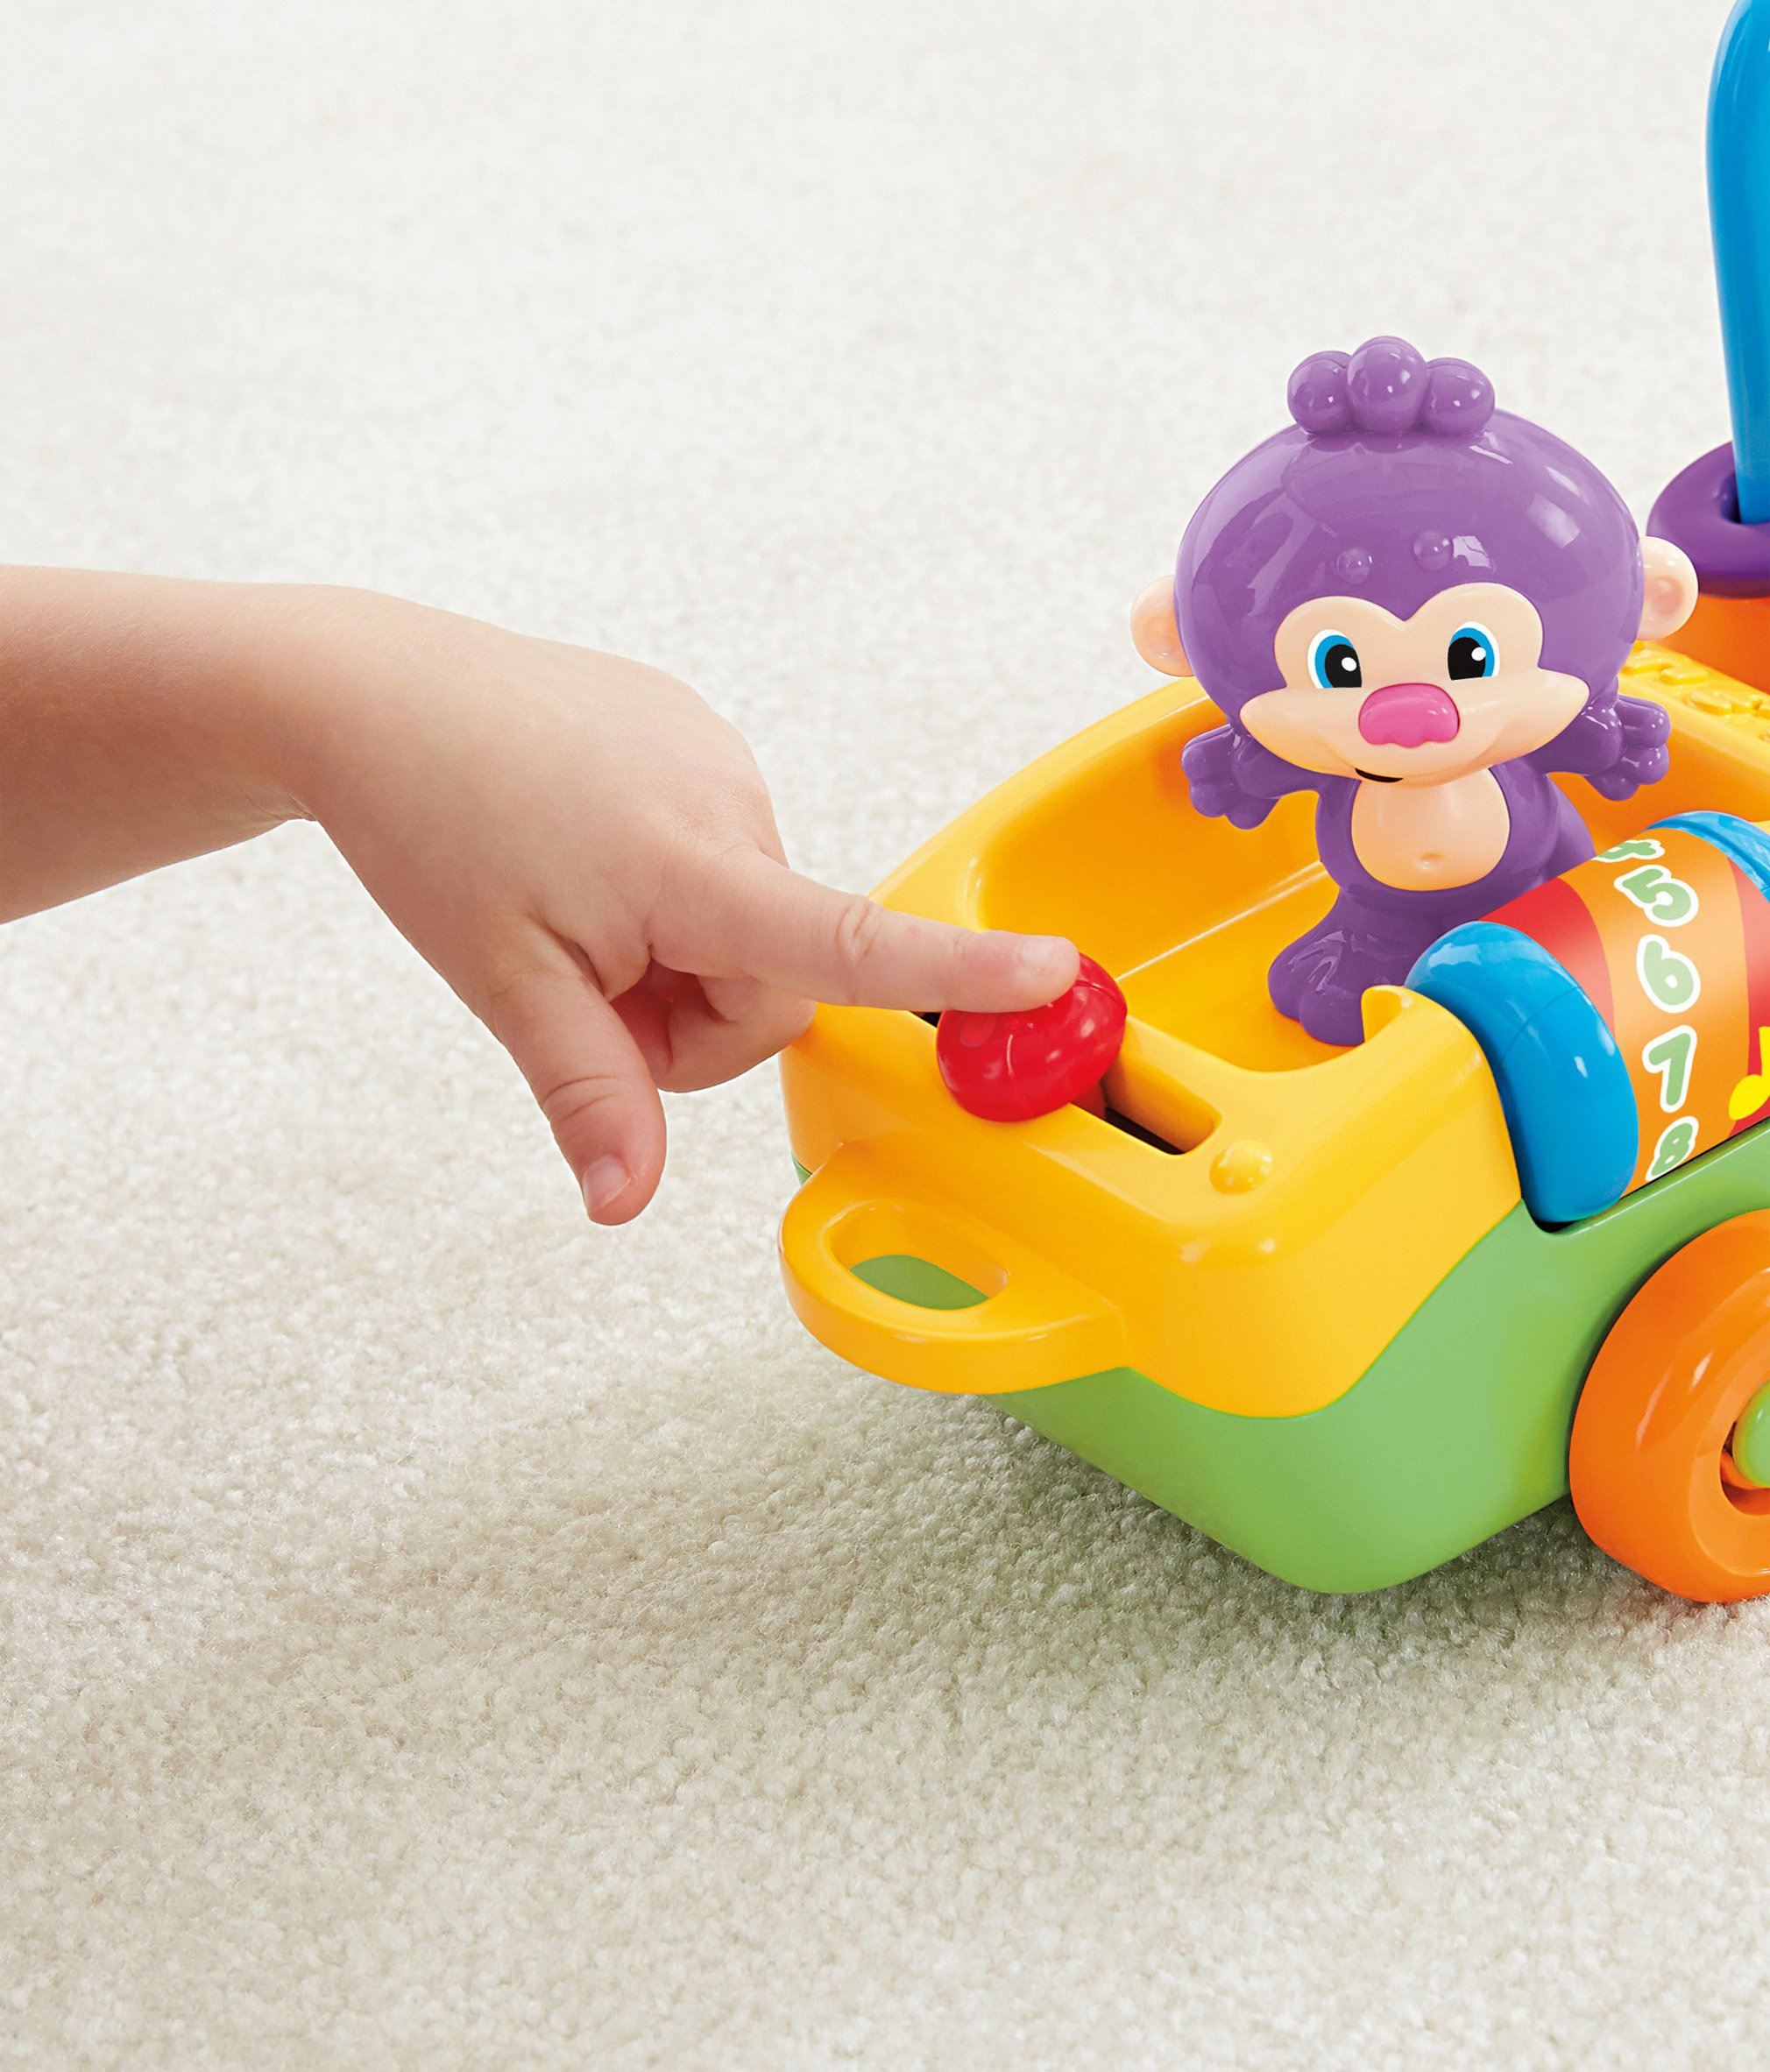 Fisher-Price Laugh & Learn Smart Stages Puppy's Smart Train by Fisher-Price (Image #16)